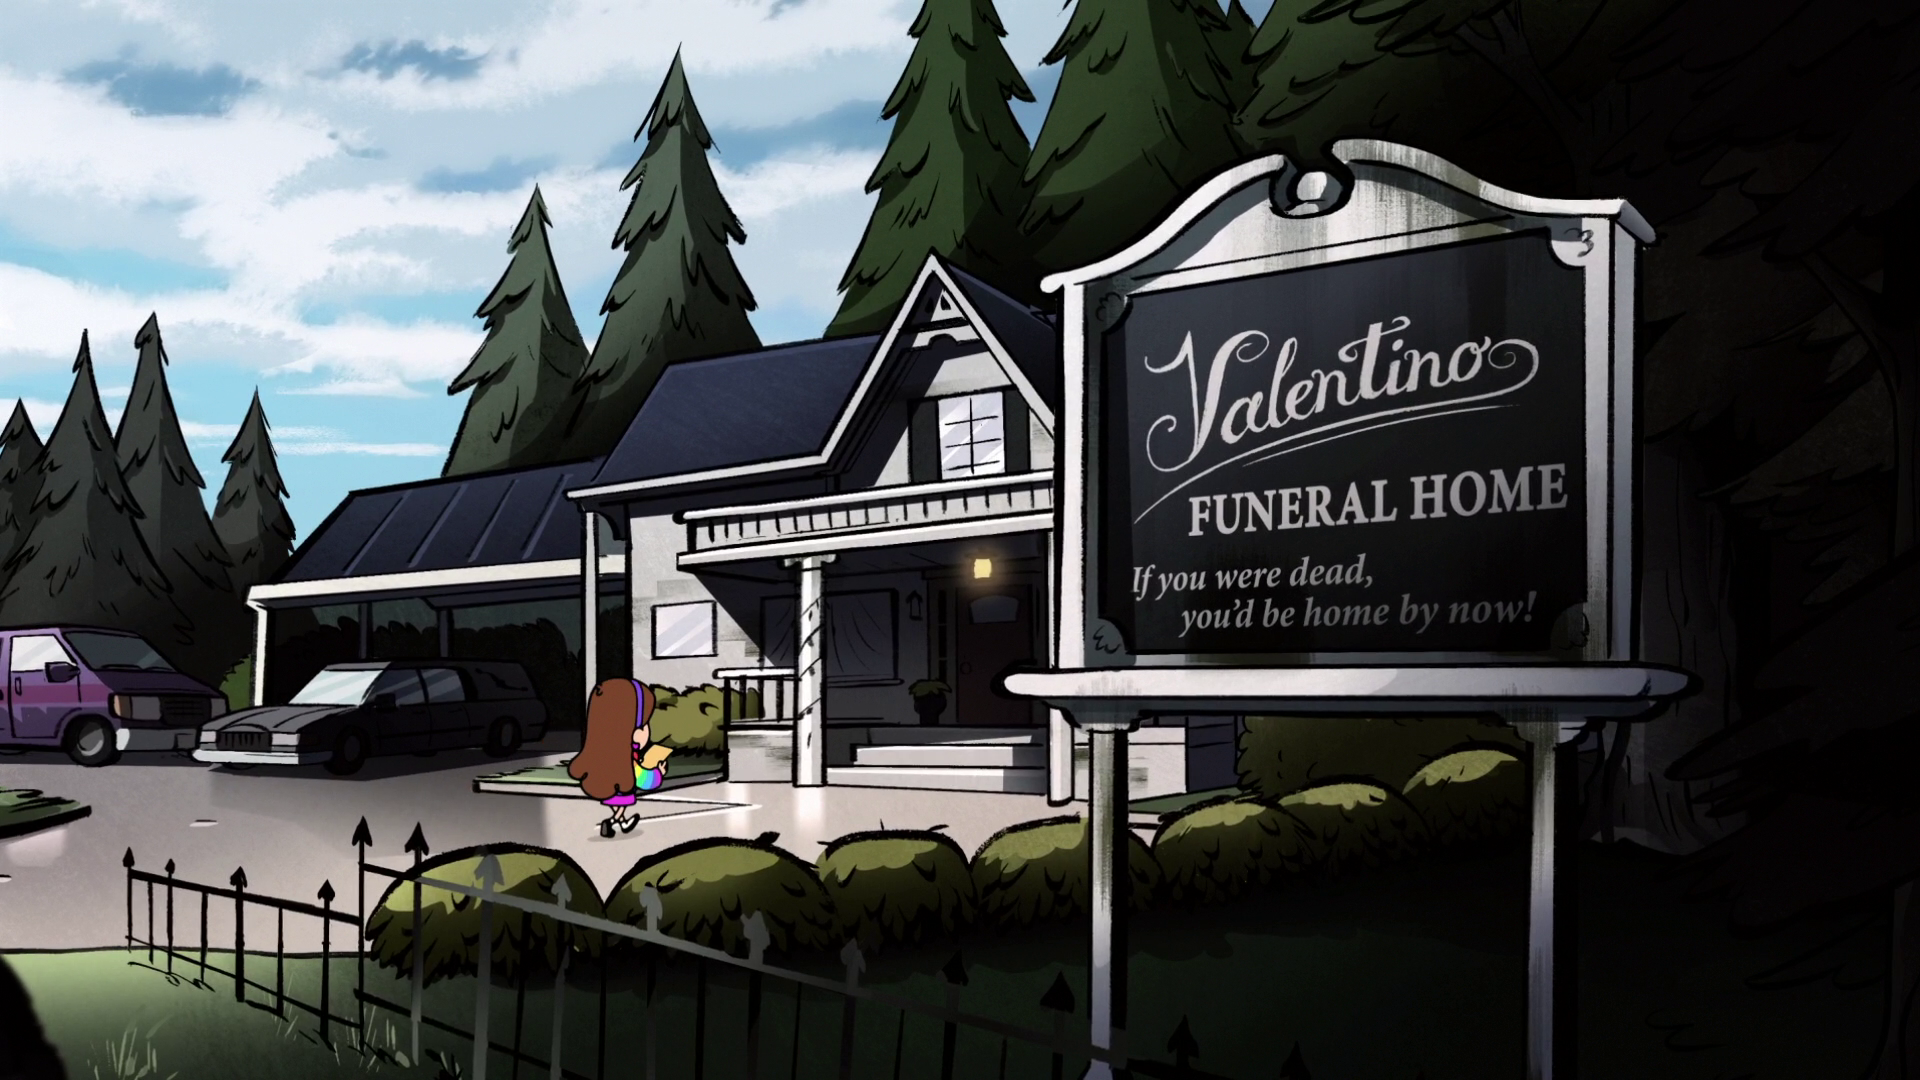 Valentino Funeral Home